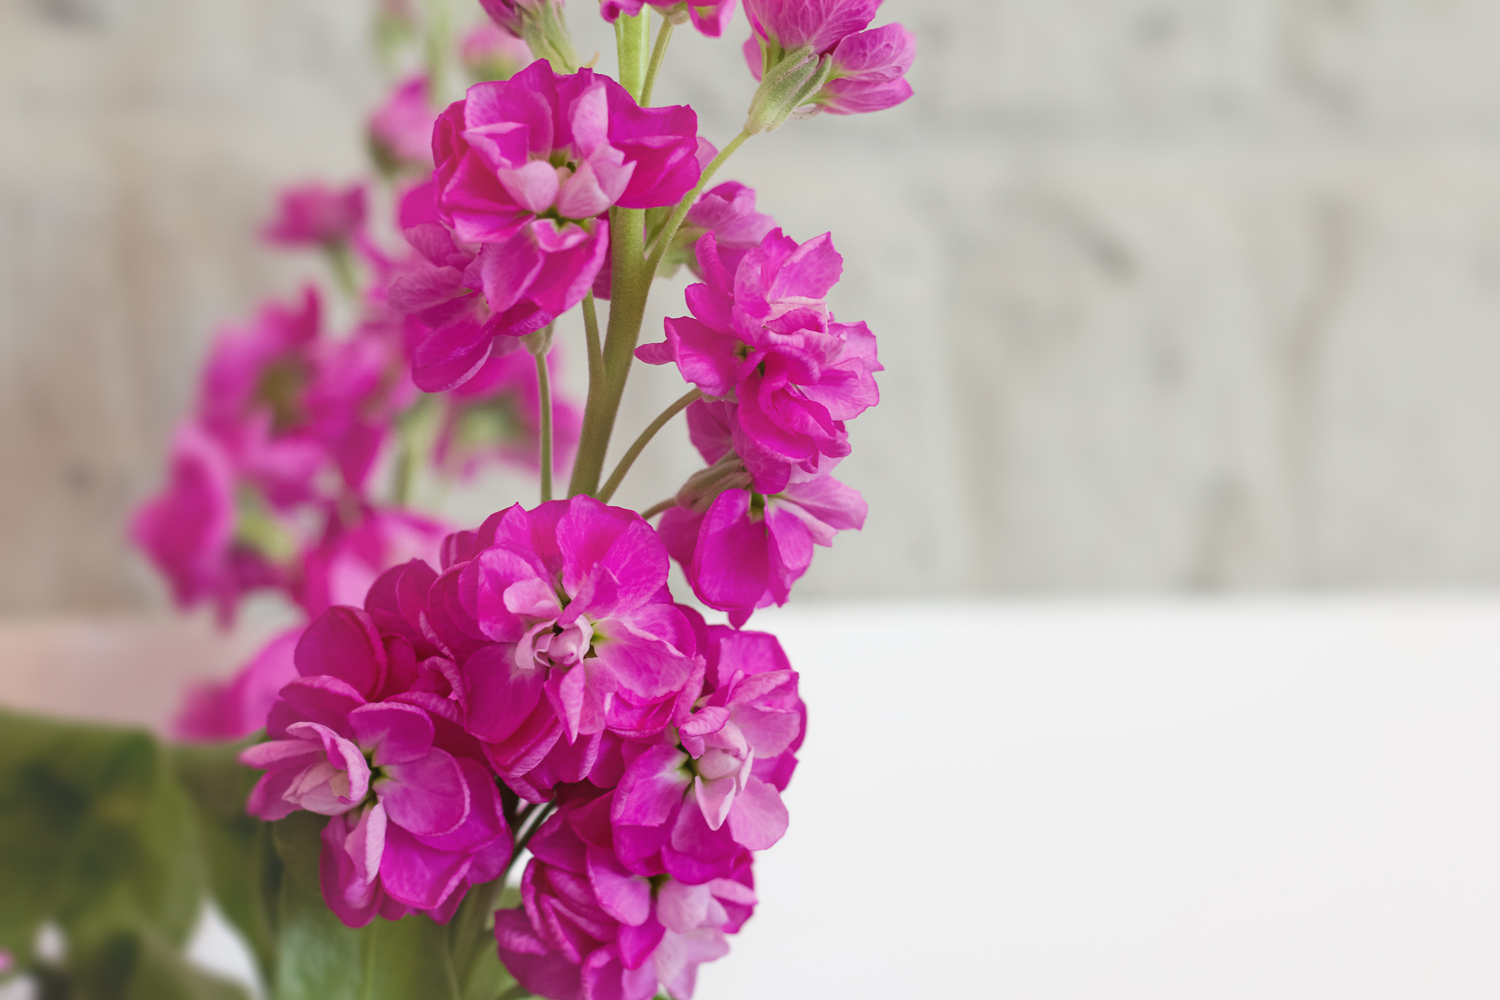 A close-up of purply pink flowers - the centre piece on the table